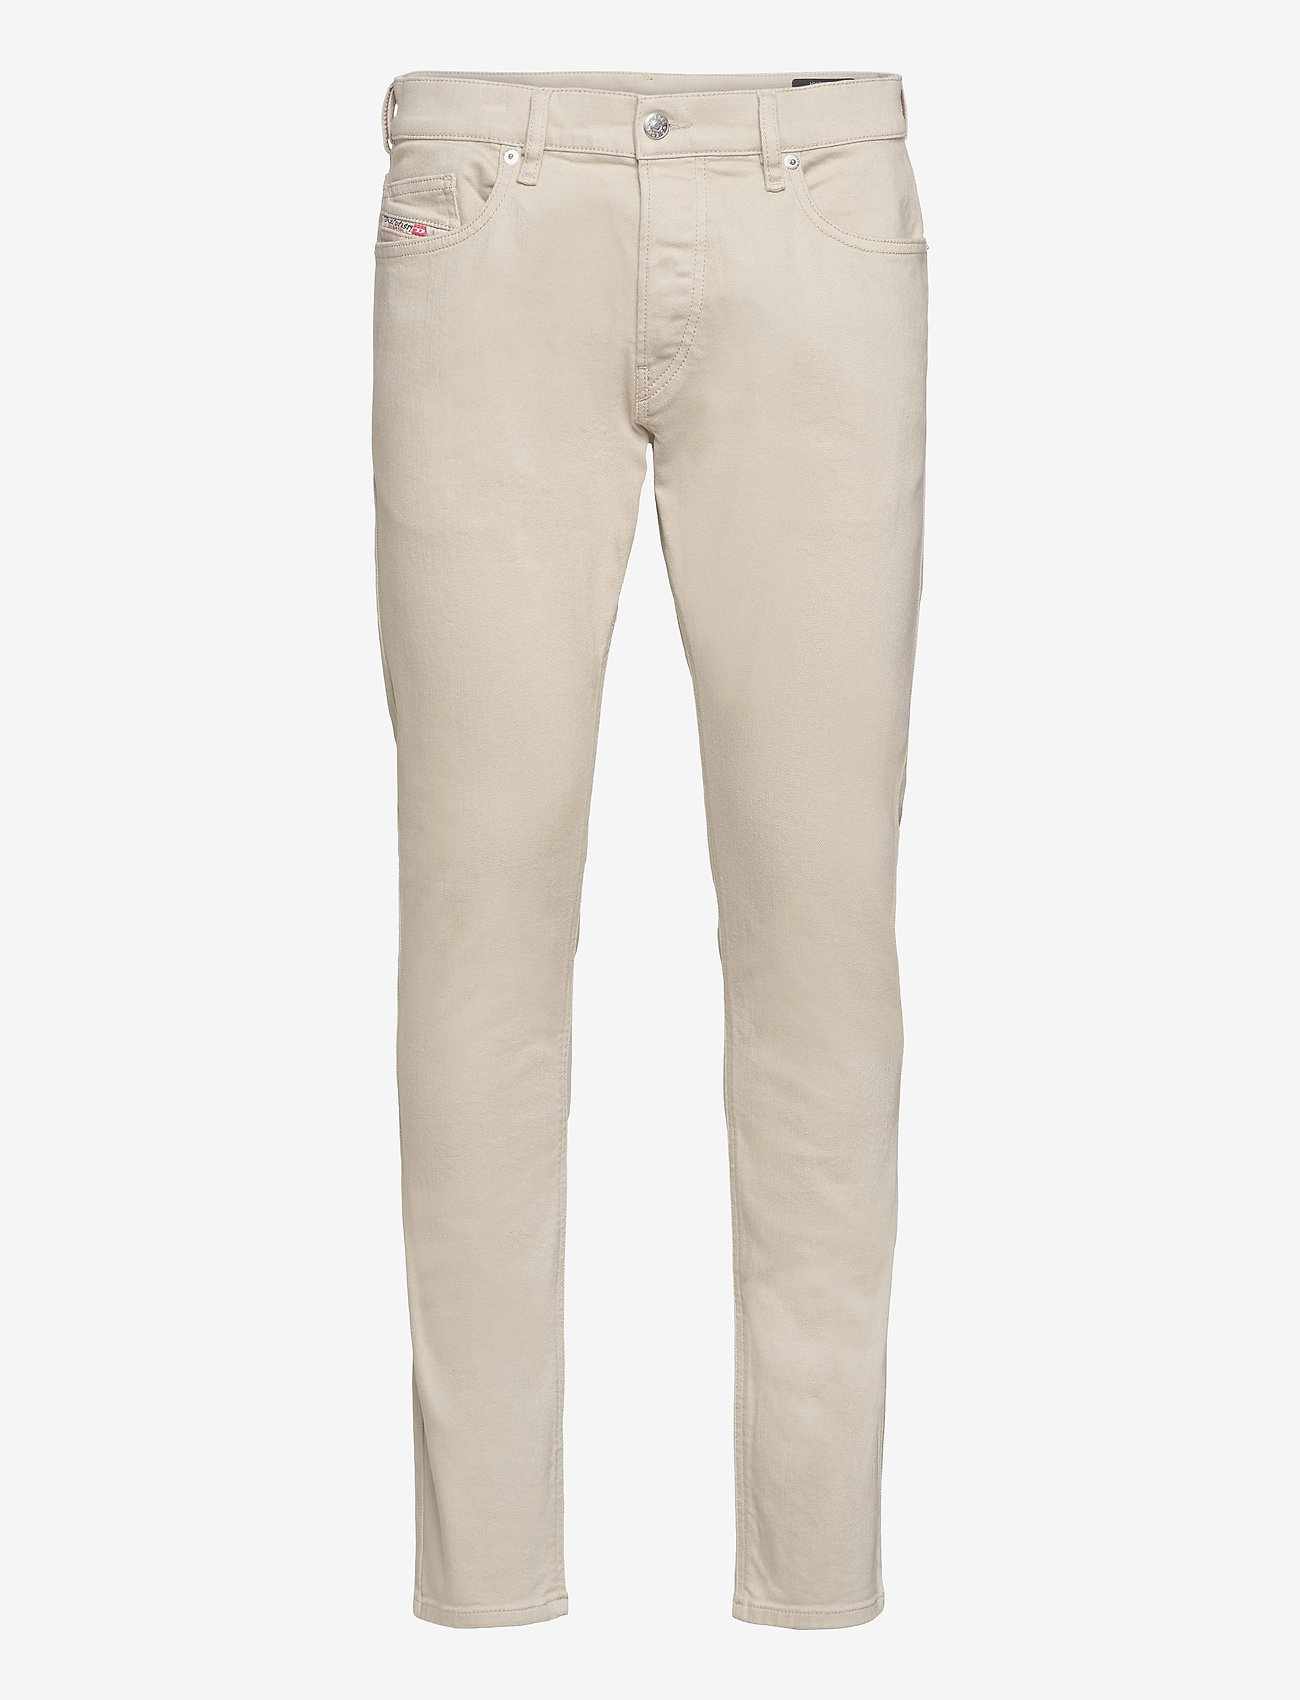 Diesel Men - D-LUSTER L.32 TROUSERS - slim jeans - chateau gray - 0